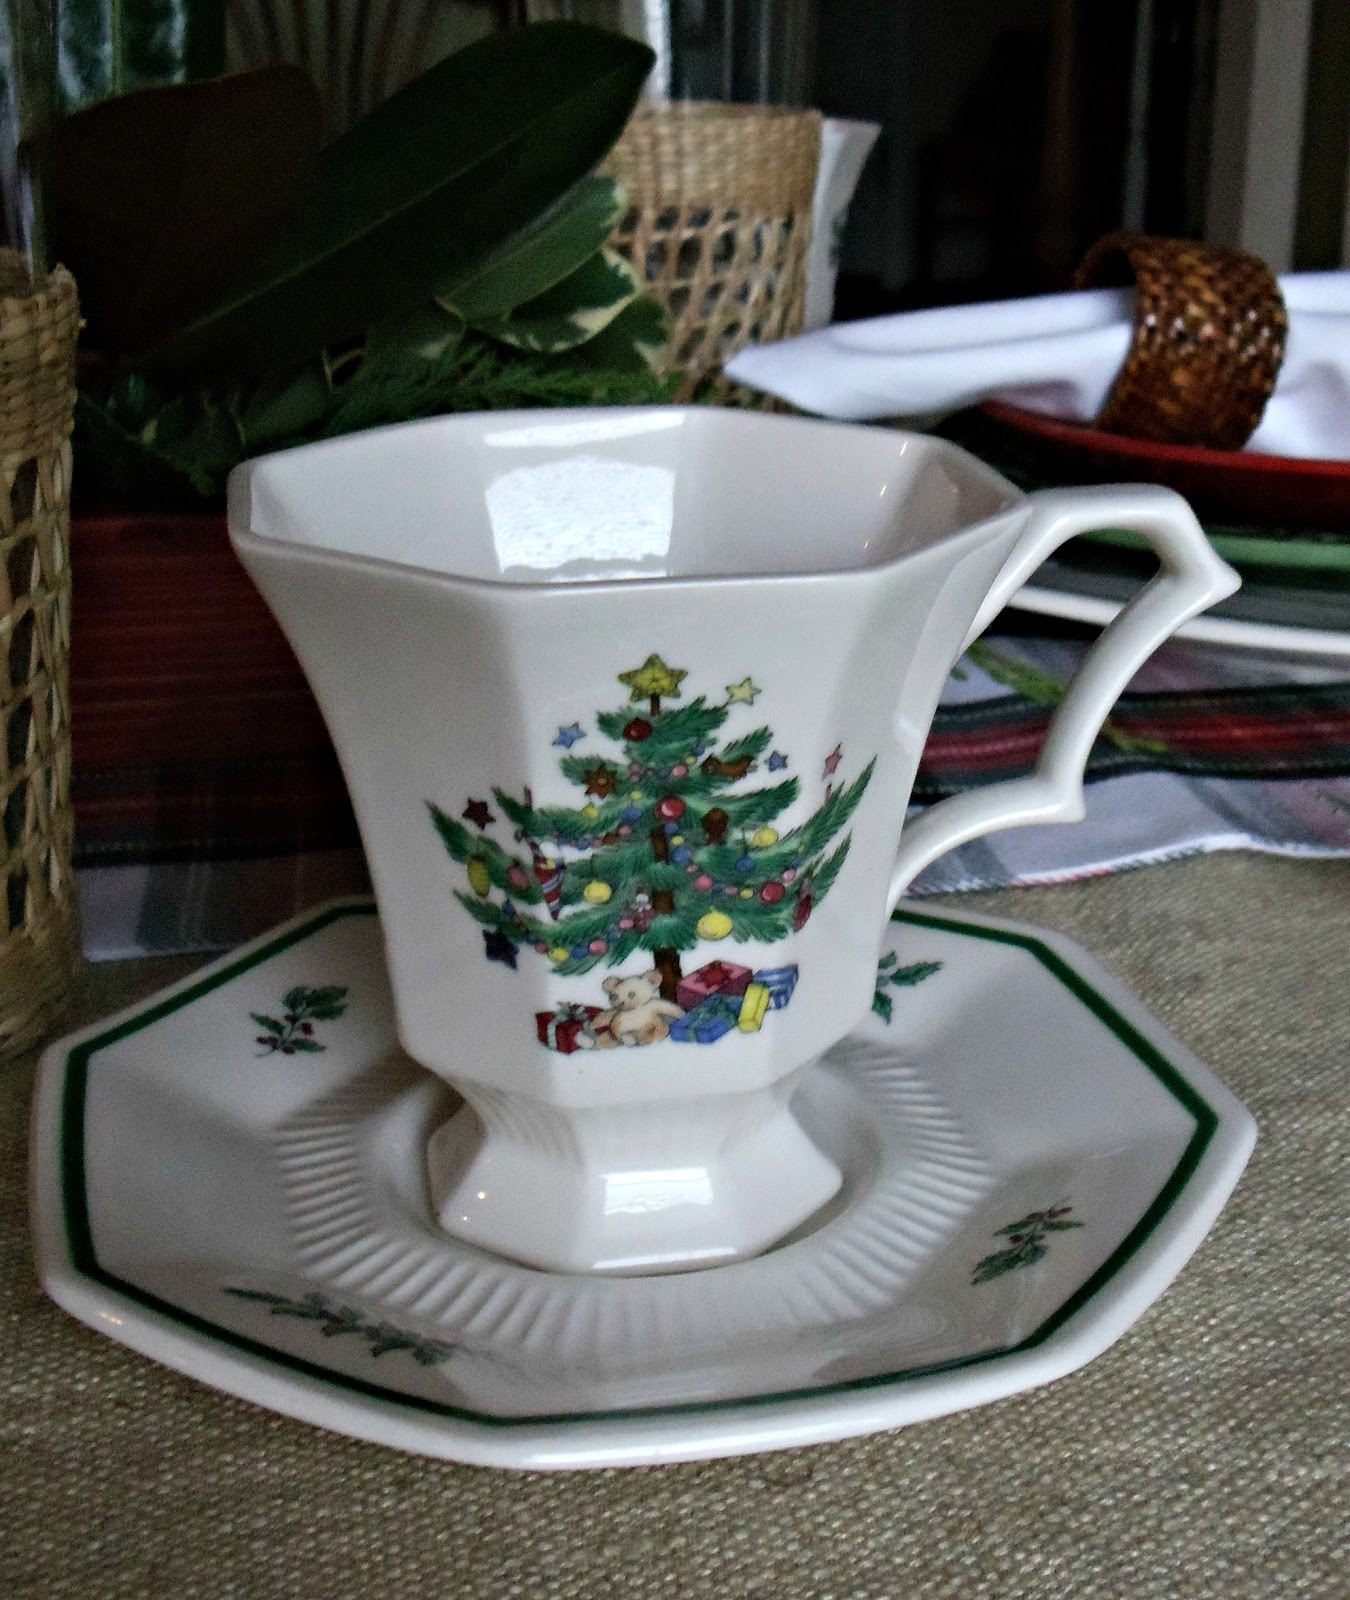 Coffee Table Stonegable: Upstairs Downstairs: Christmas Tablescape